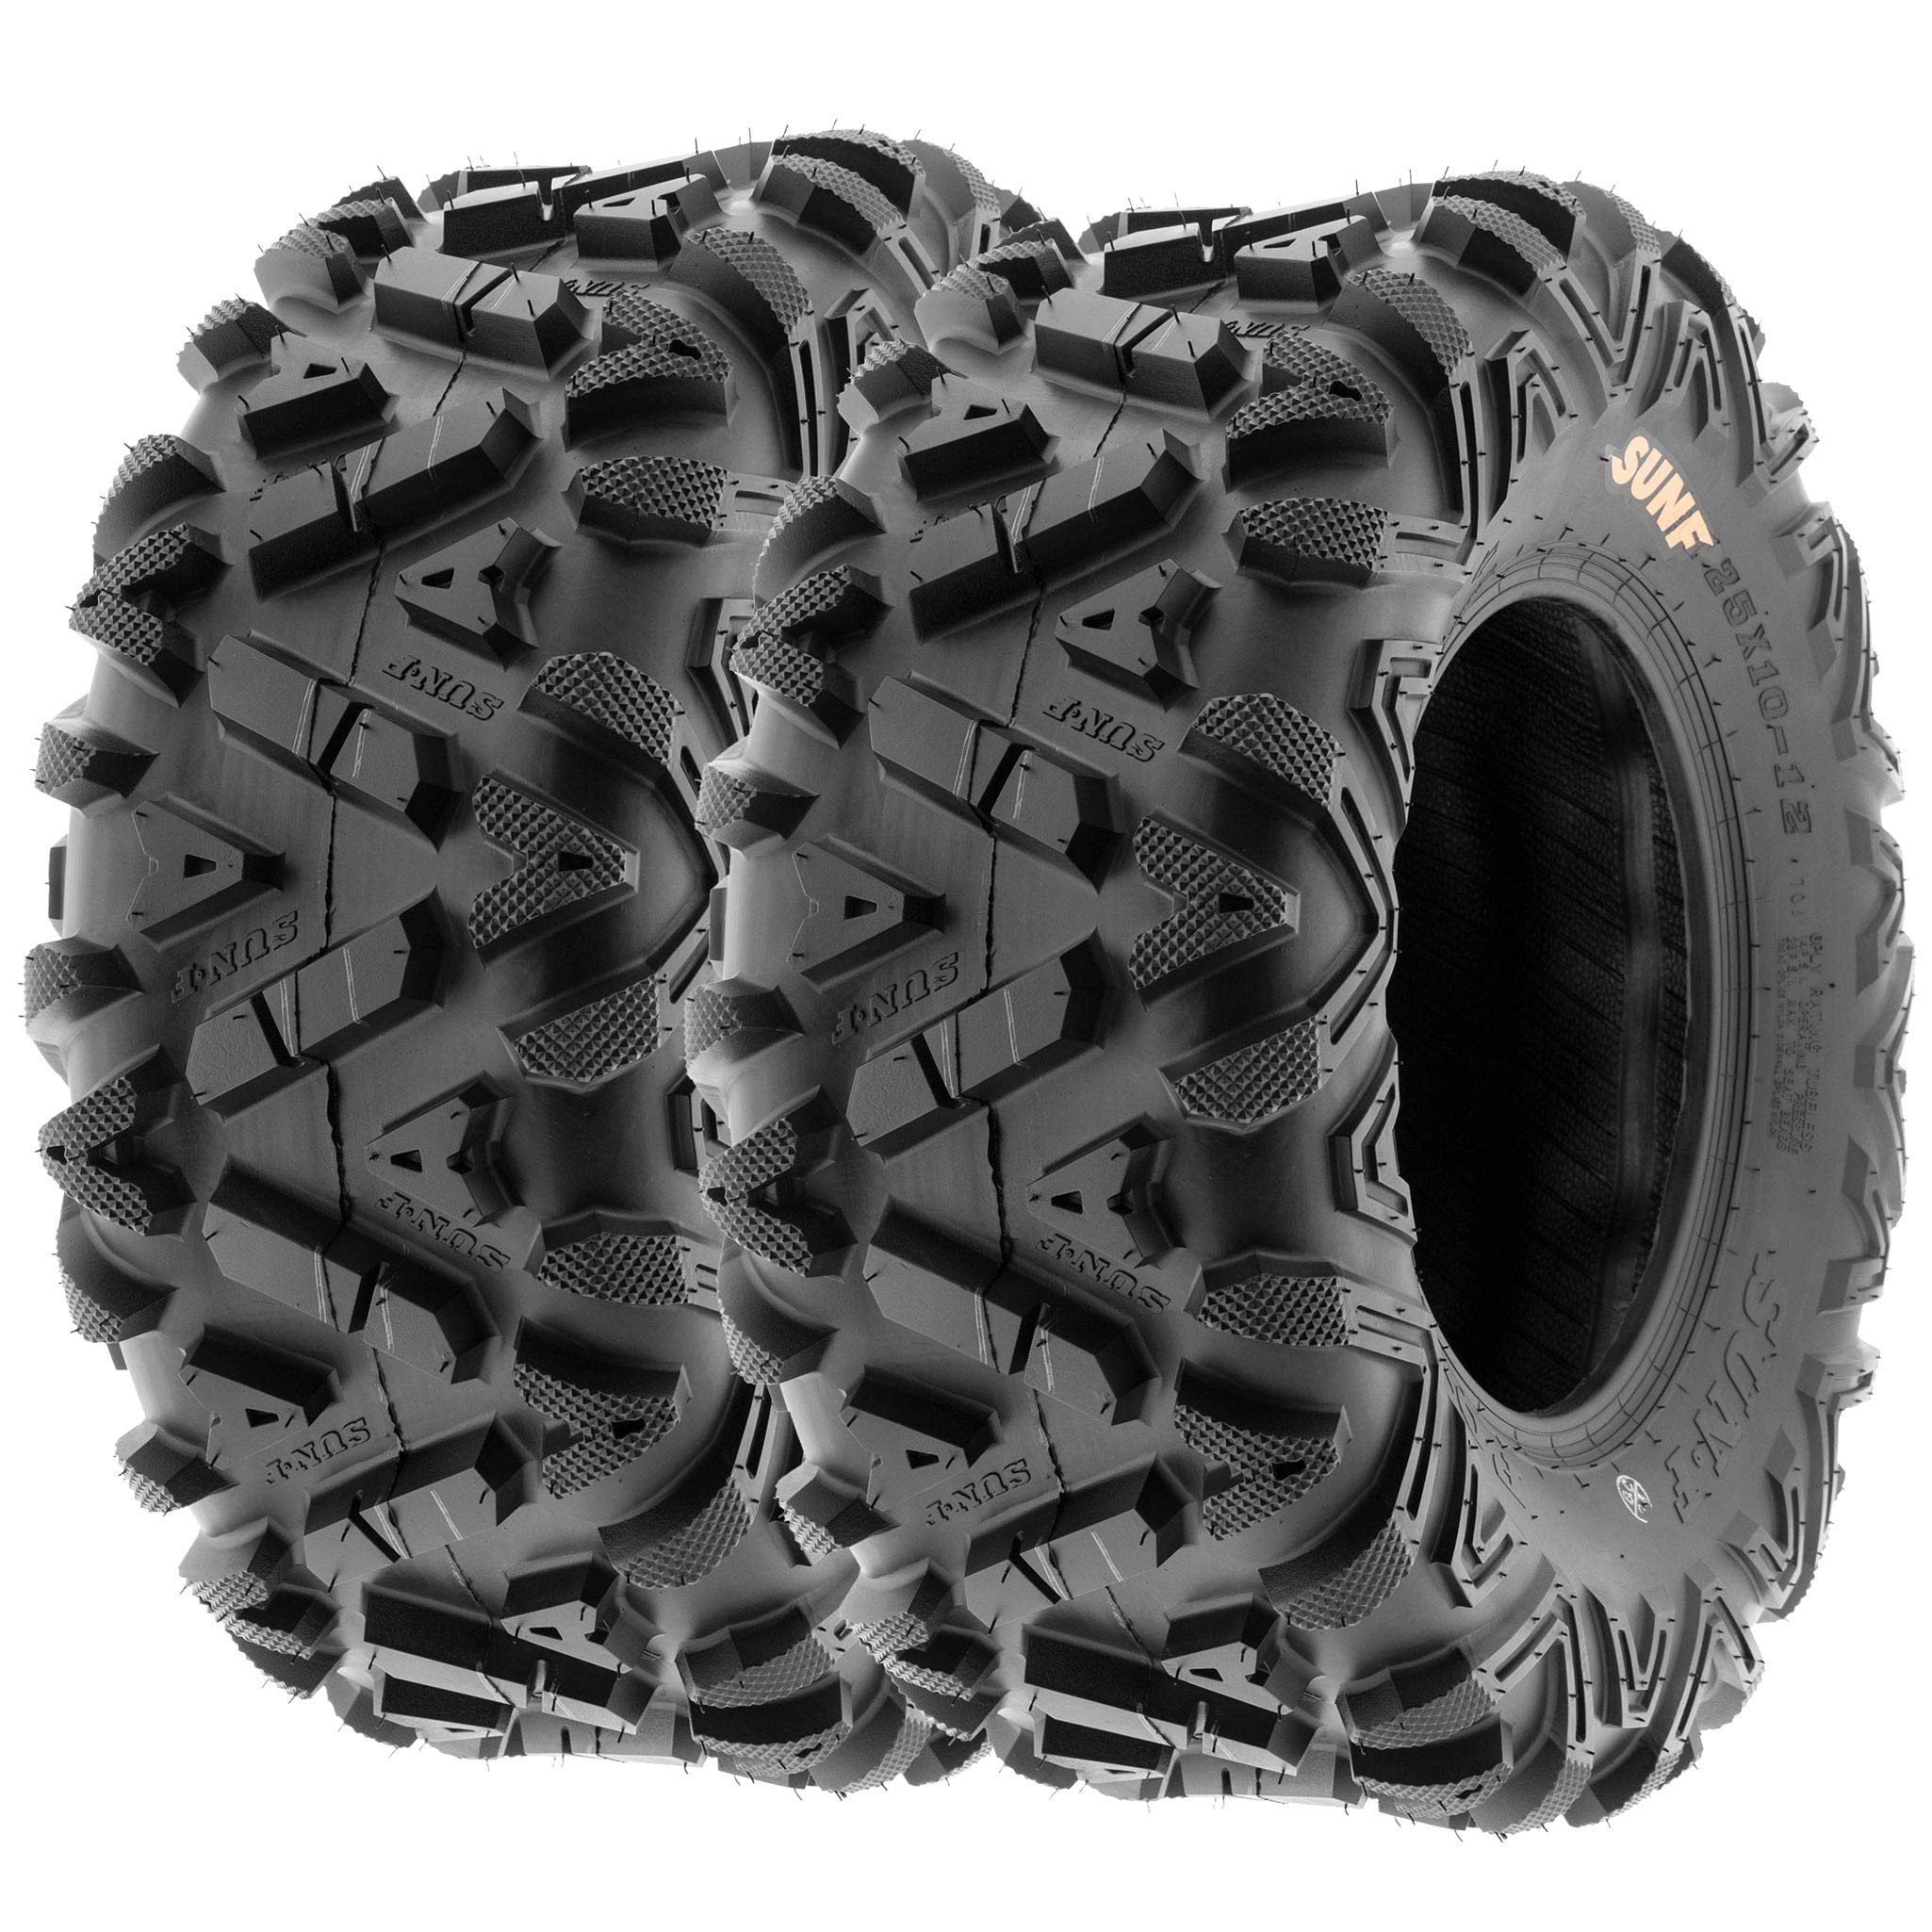 SunF A033 ATV/UTV Tires -- 25x11-12 -- 6 Ply | Pair of 2 | All-Terrain Off-Road by SunF